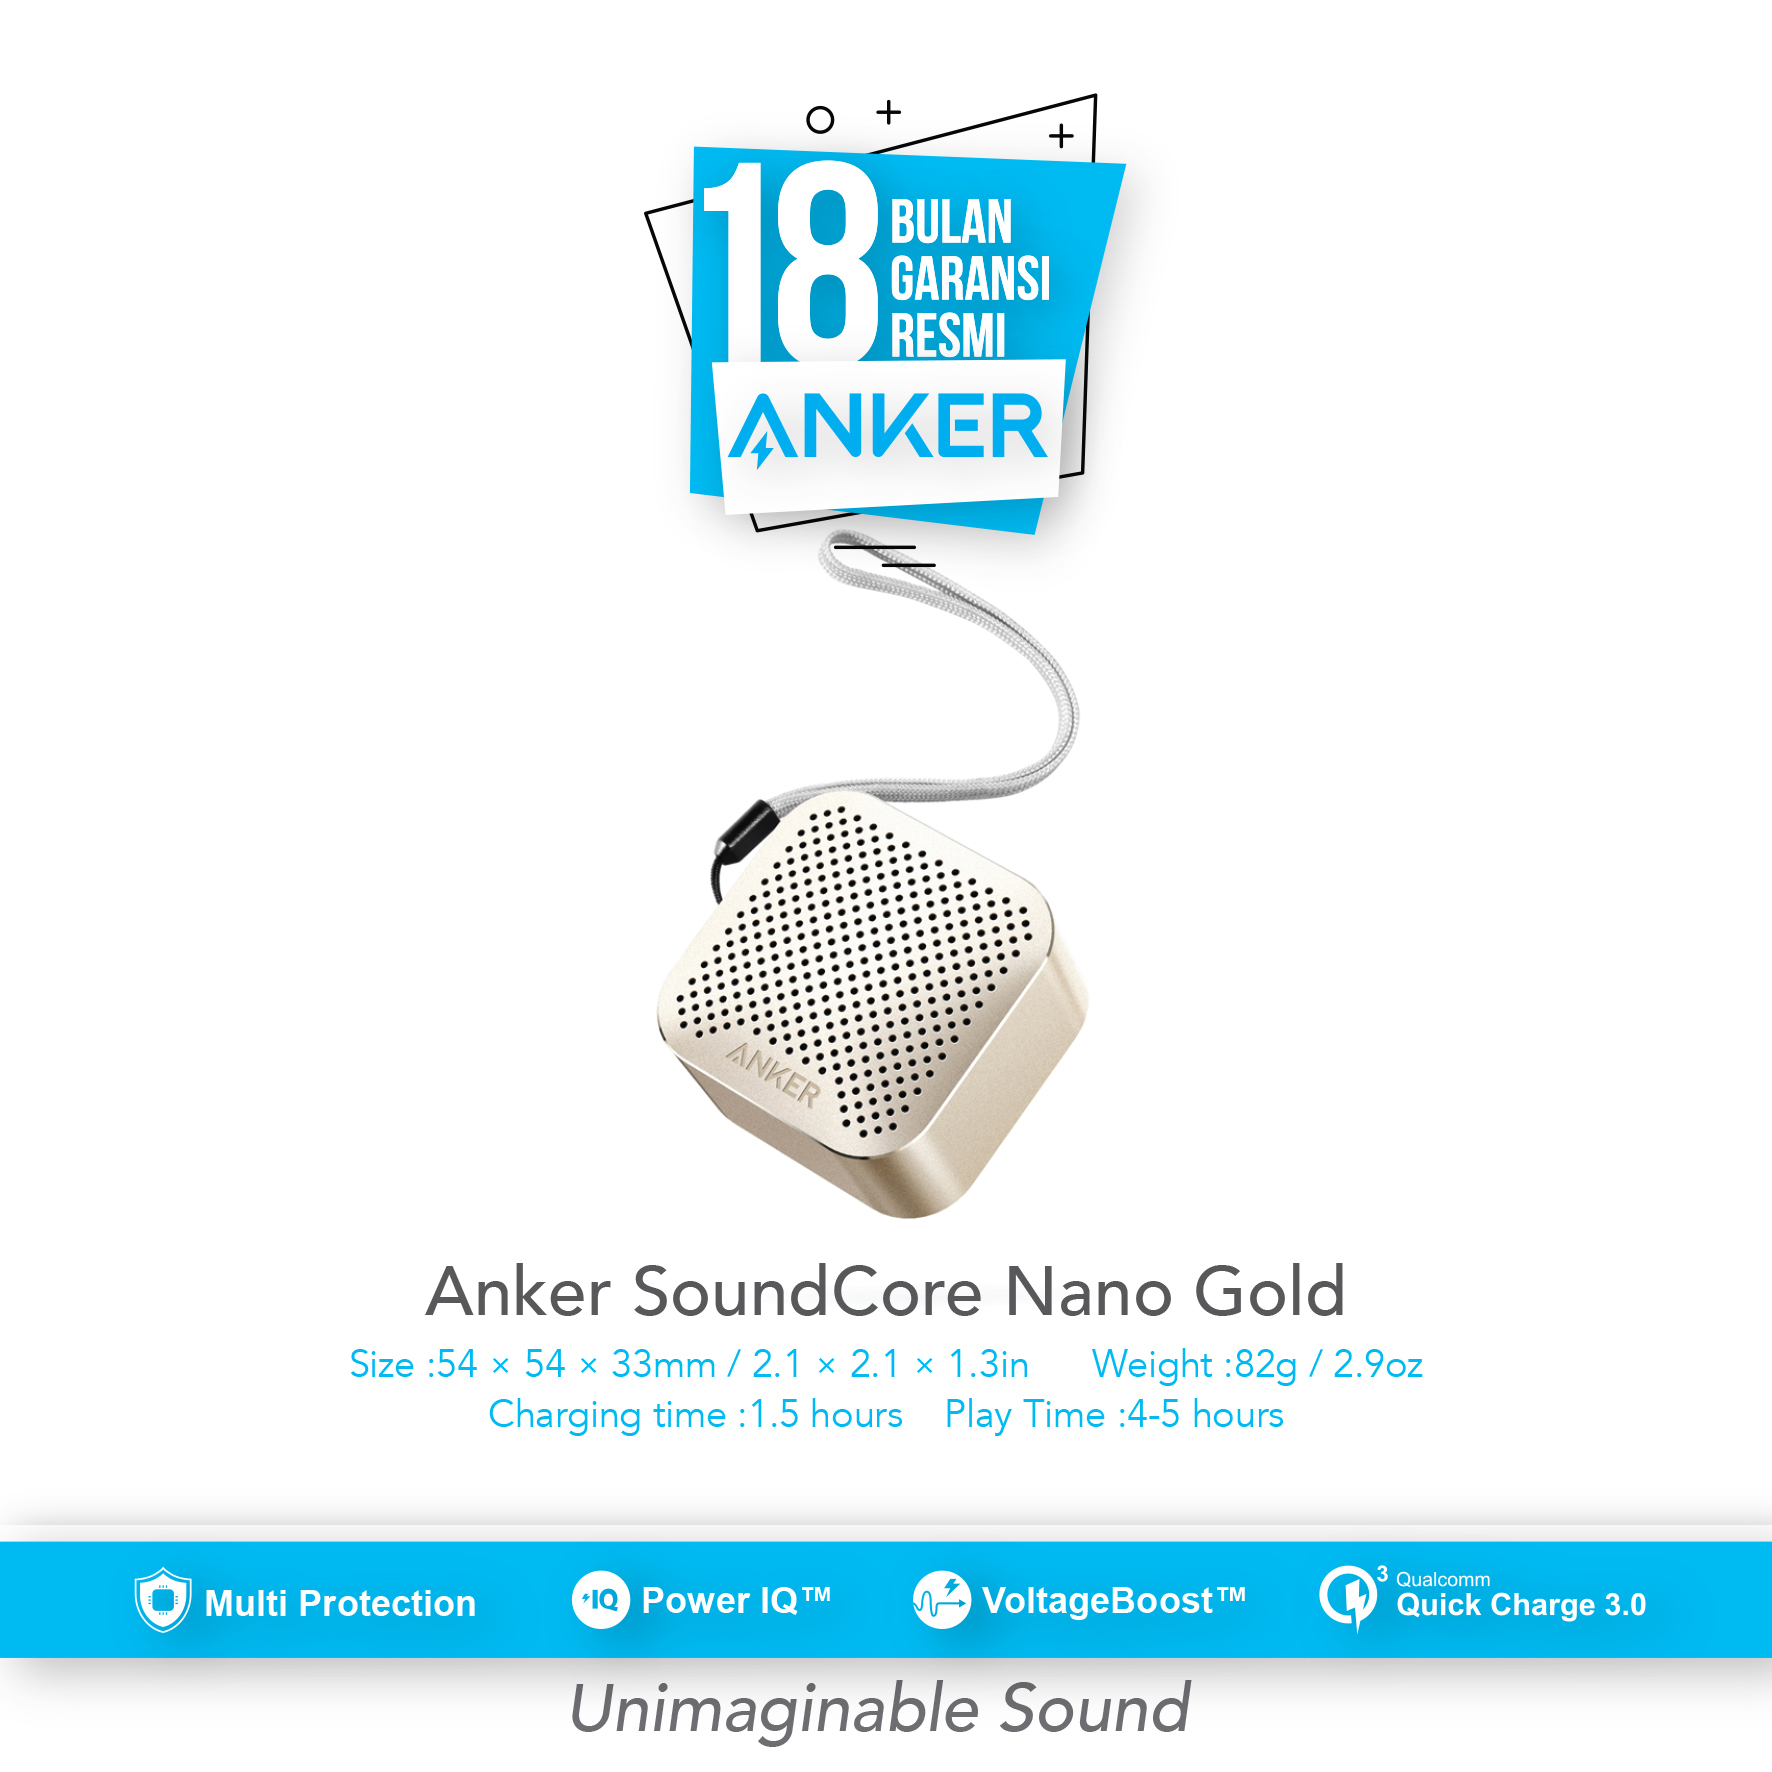 Jual Produk Home Improvement Online Termurah Anker Indonesia Official Replacement Apple Mackbook 13inch A1185 Battery 108v 5600mah Soundcore Nano Wireless Speaker Gold A3104